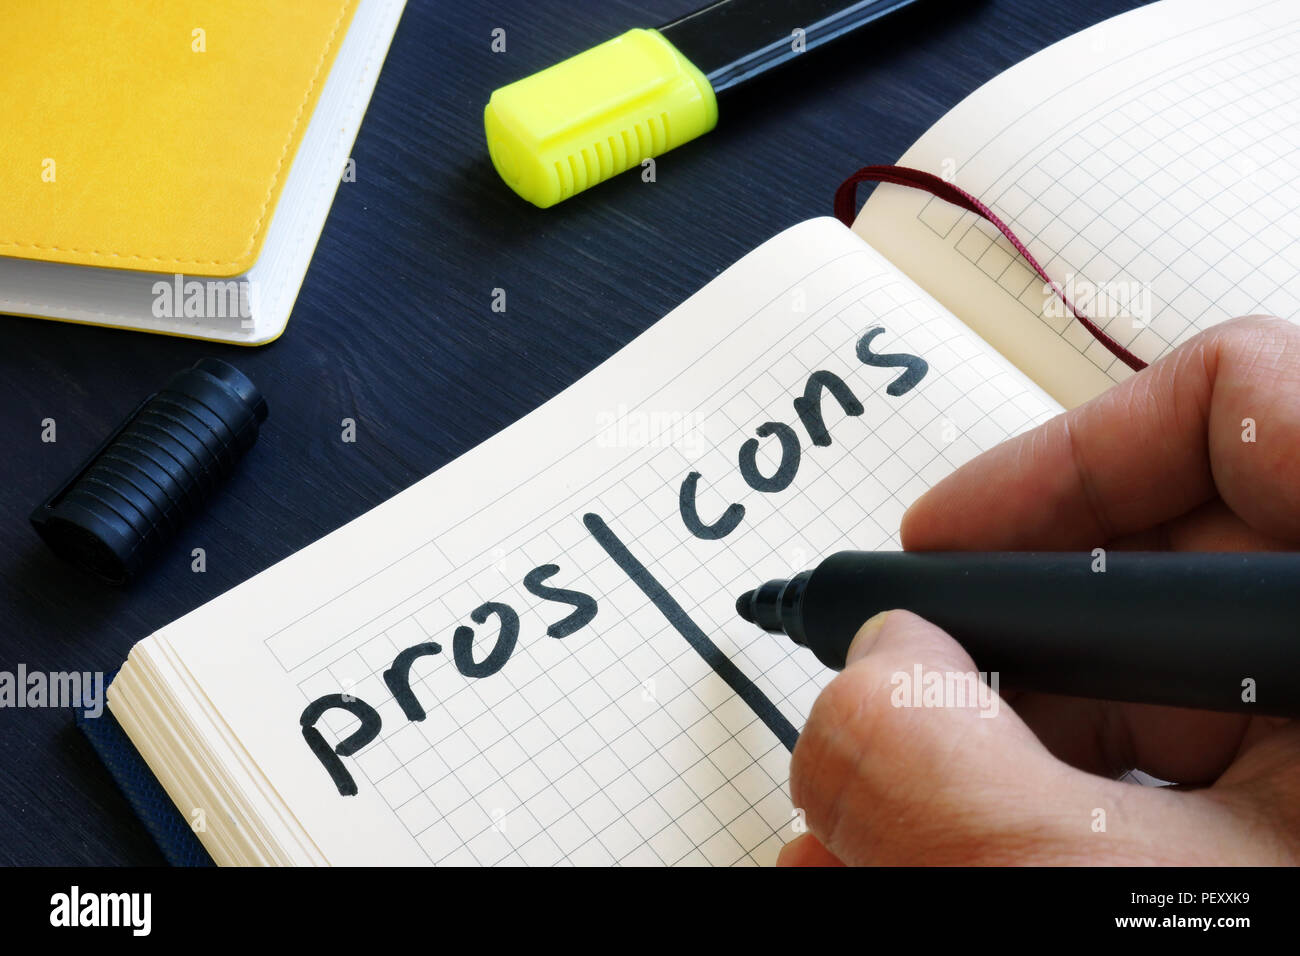 Man is writing list of pros and cons. - Stock Image